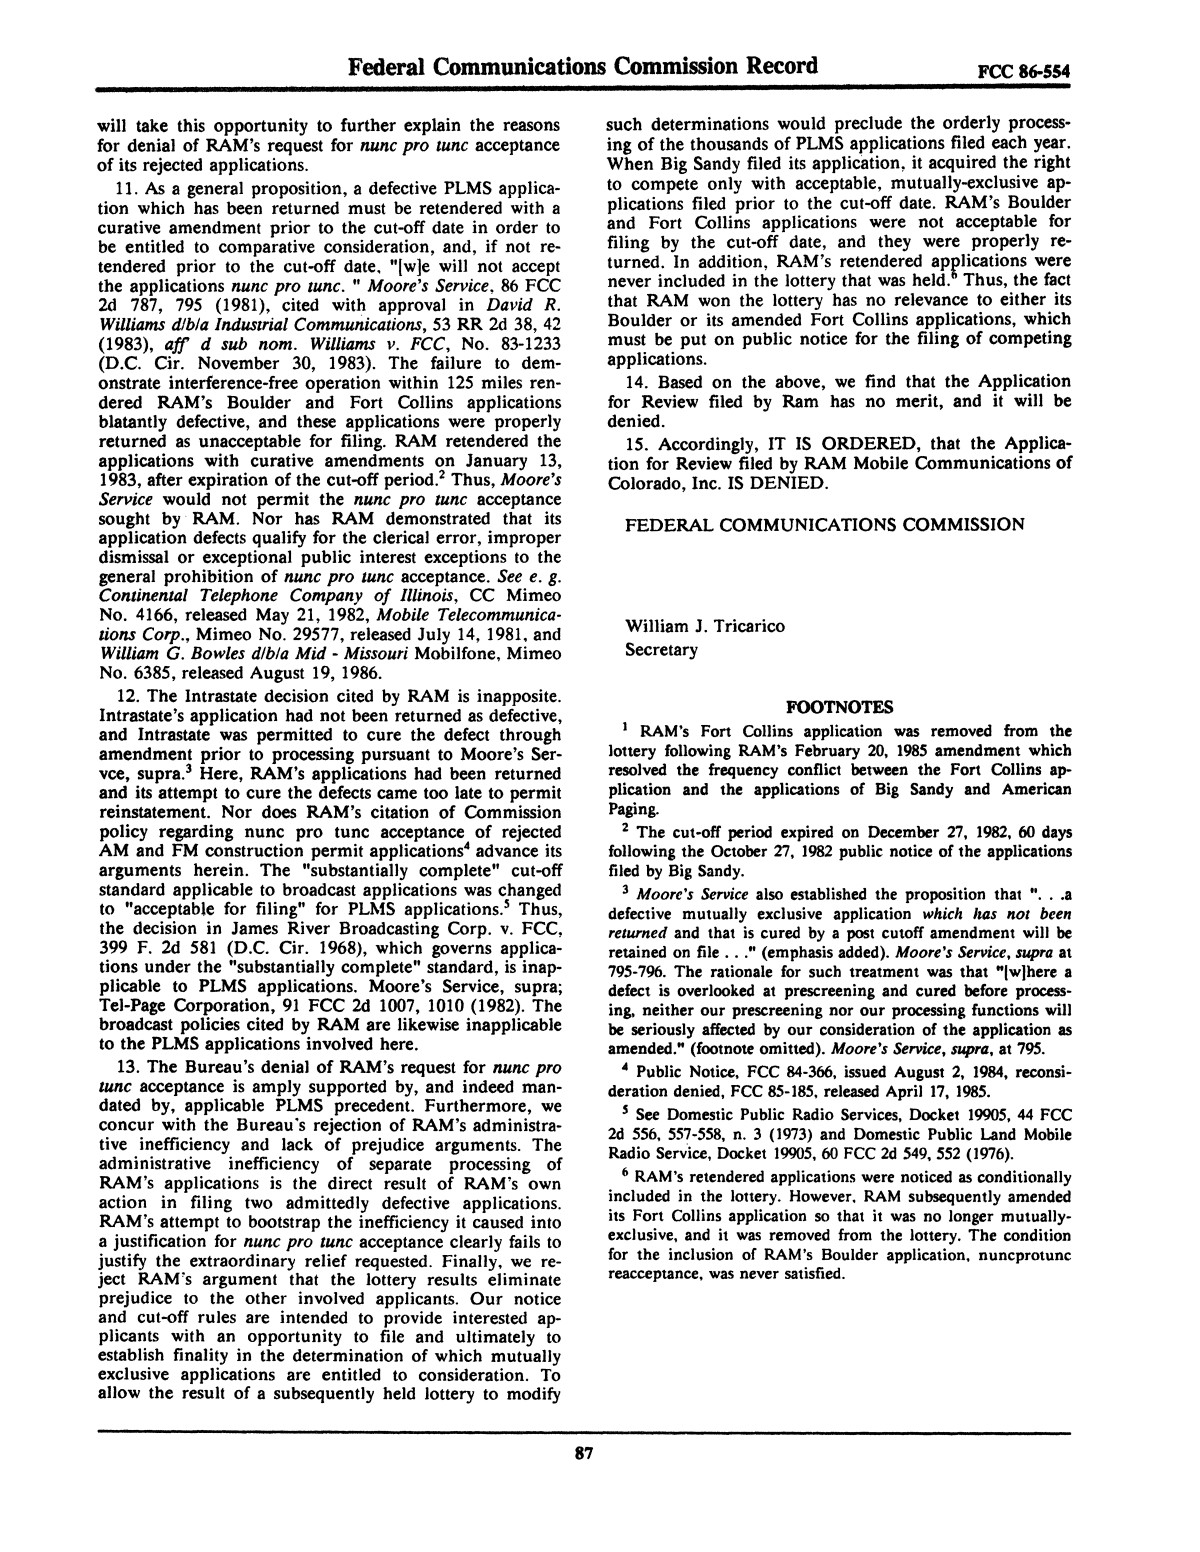 FCC Record, Volume 2, No. 1, Pages 1 to 409, January 5 - January 16, 1987                                                                                                      87